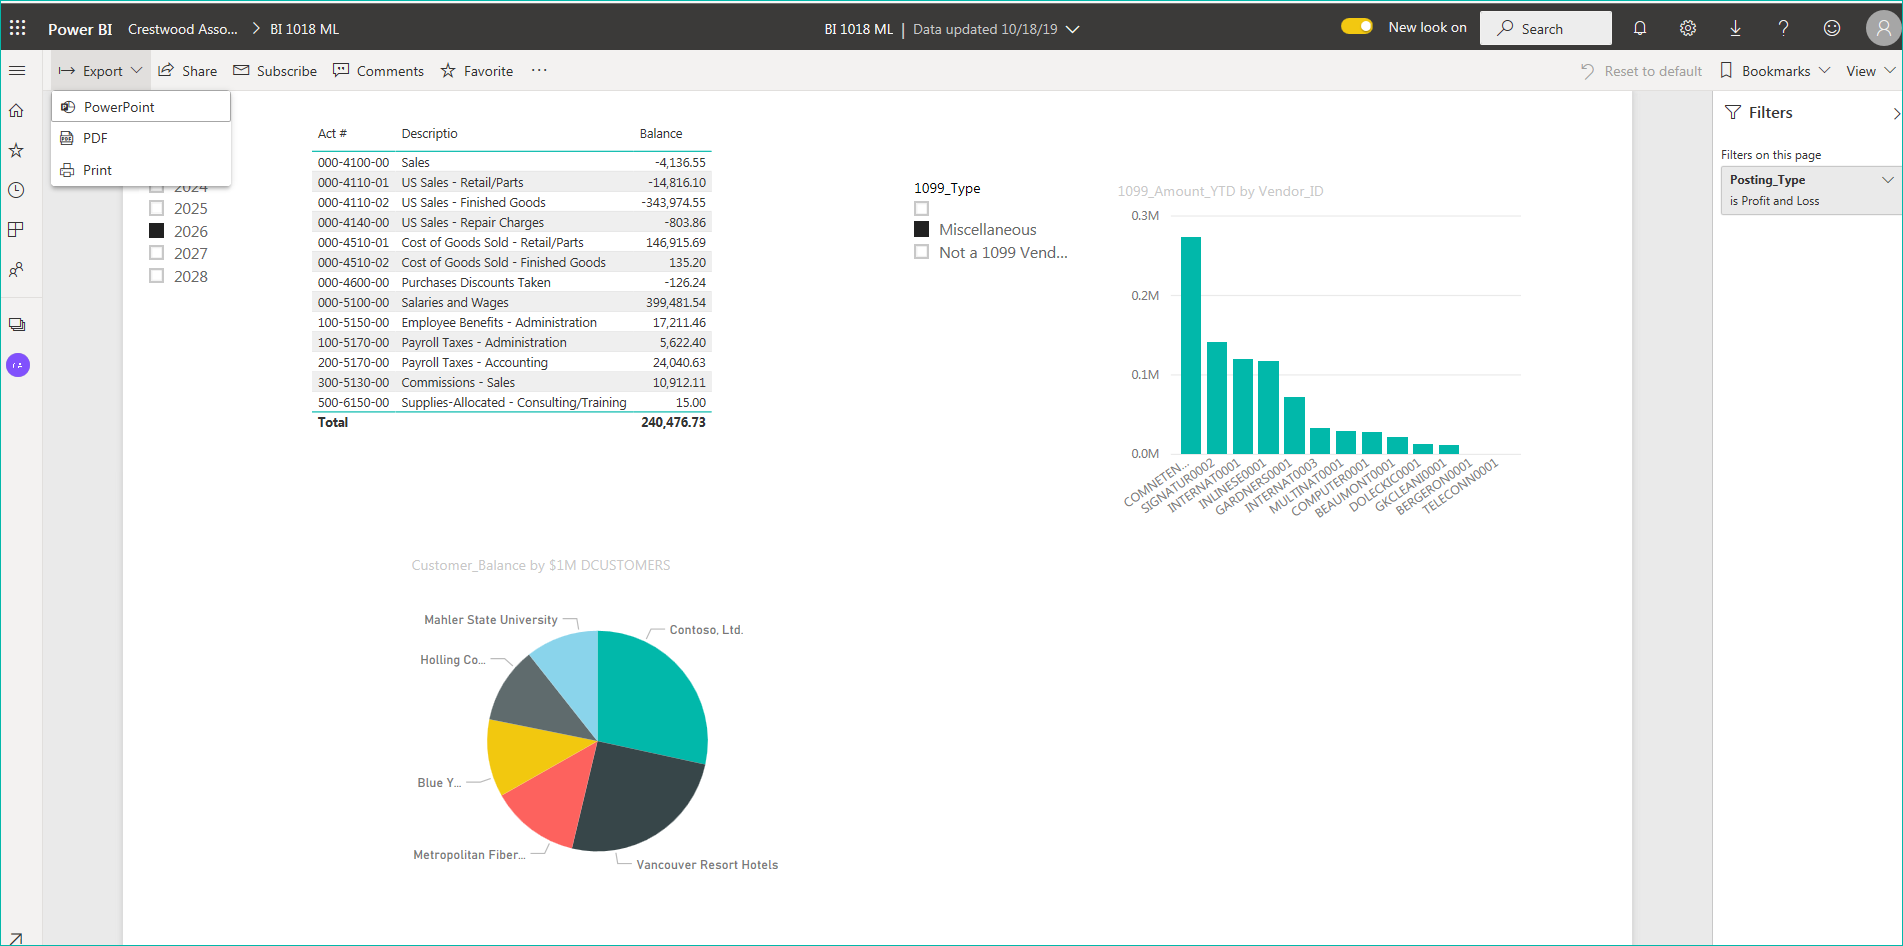 Dynamics 365 Dashboards using Power BI